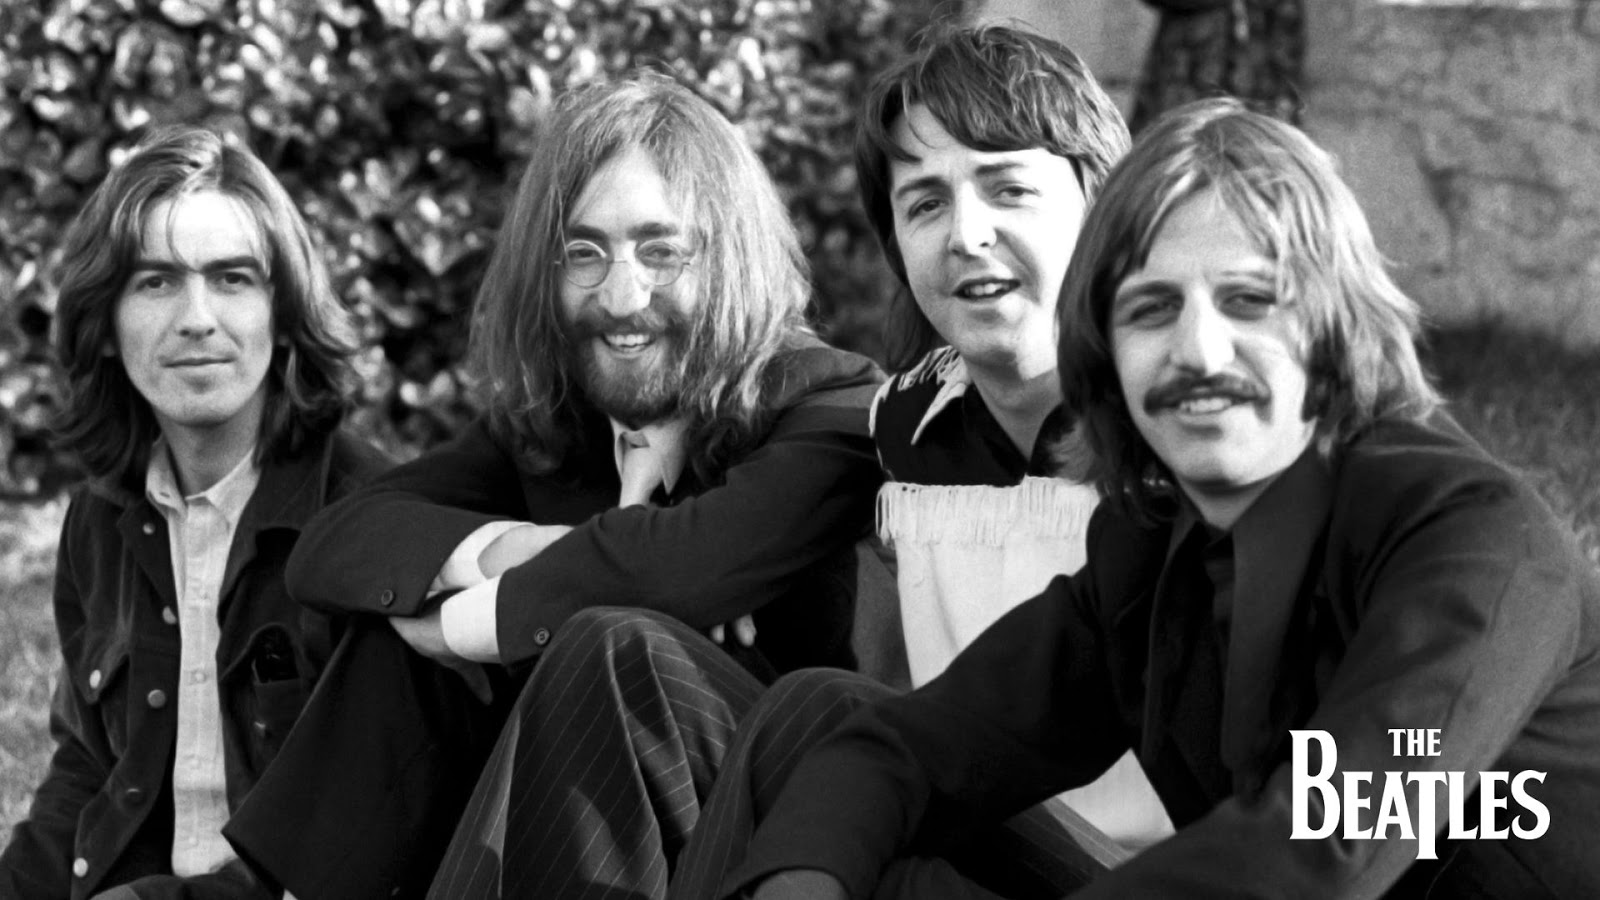 The Daily Beatle: The Beatles - for free on YouTube